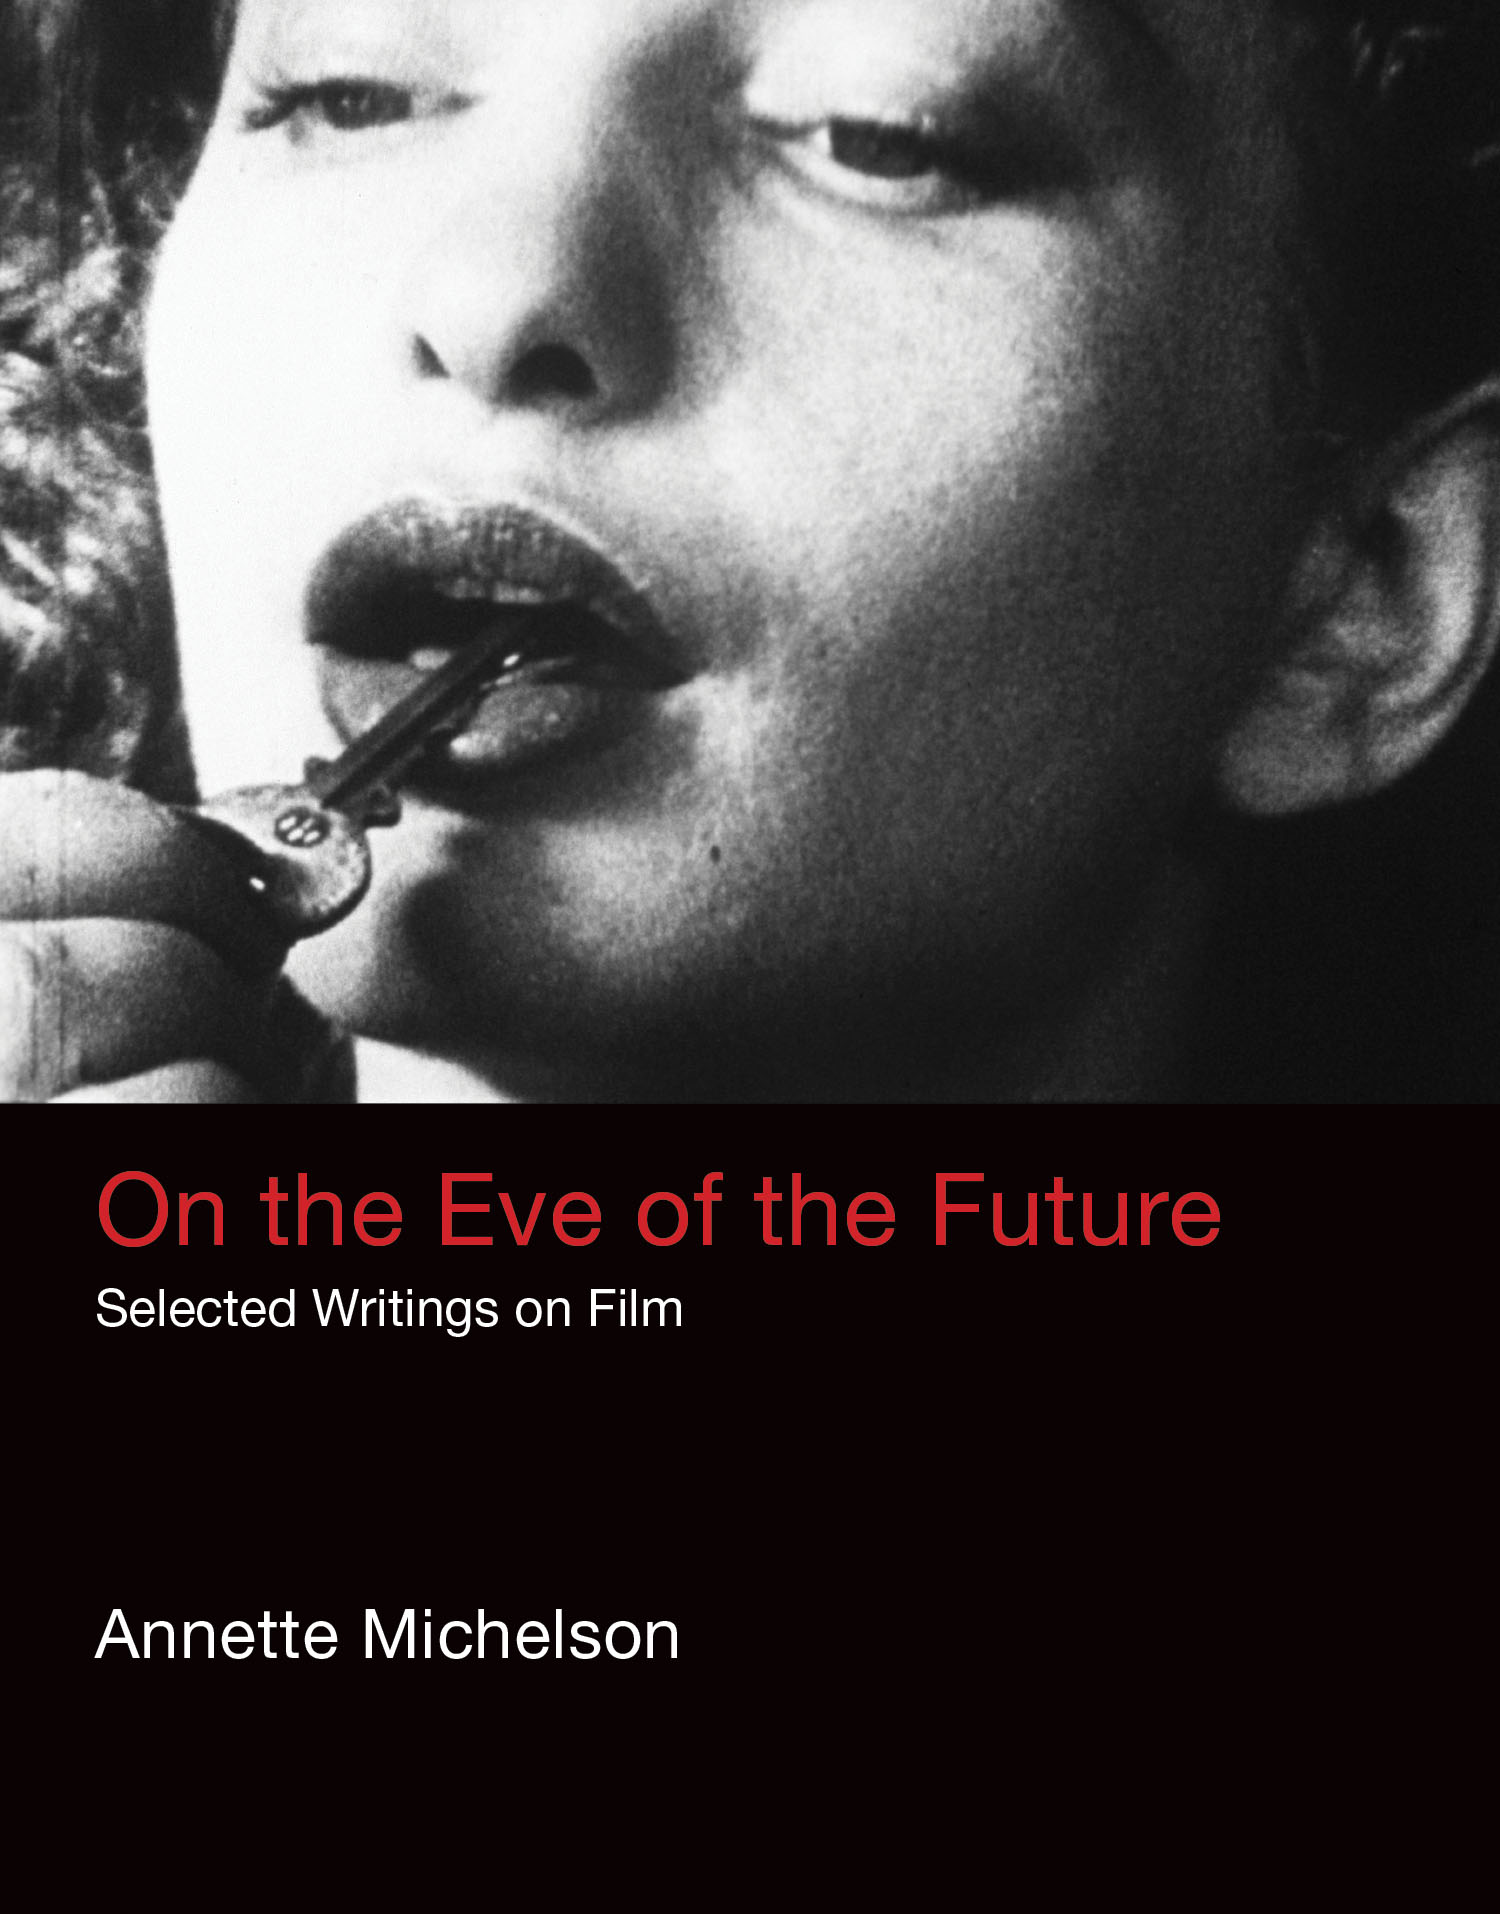 Buy On the Eve of the Future: Selected Writings on Film